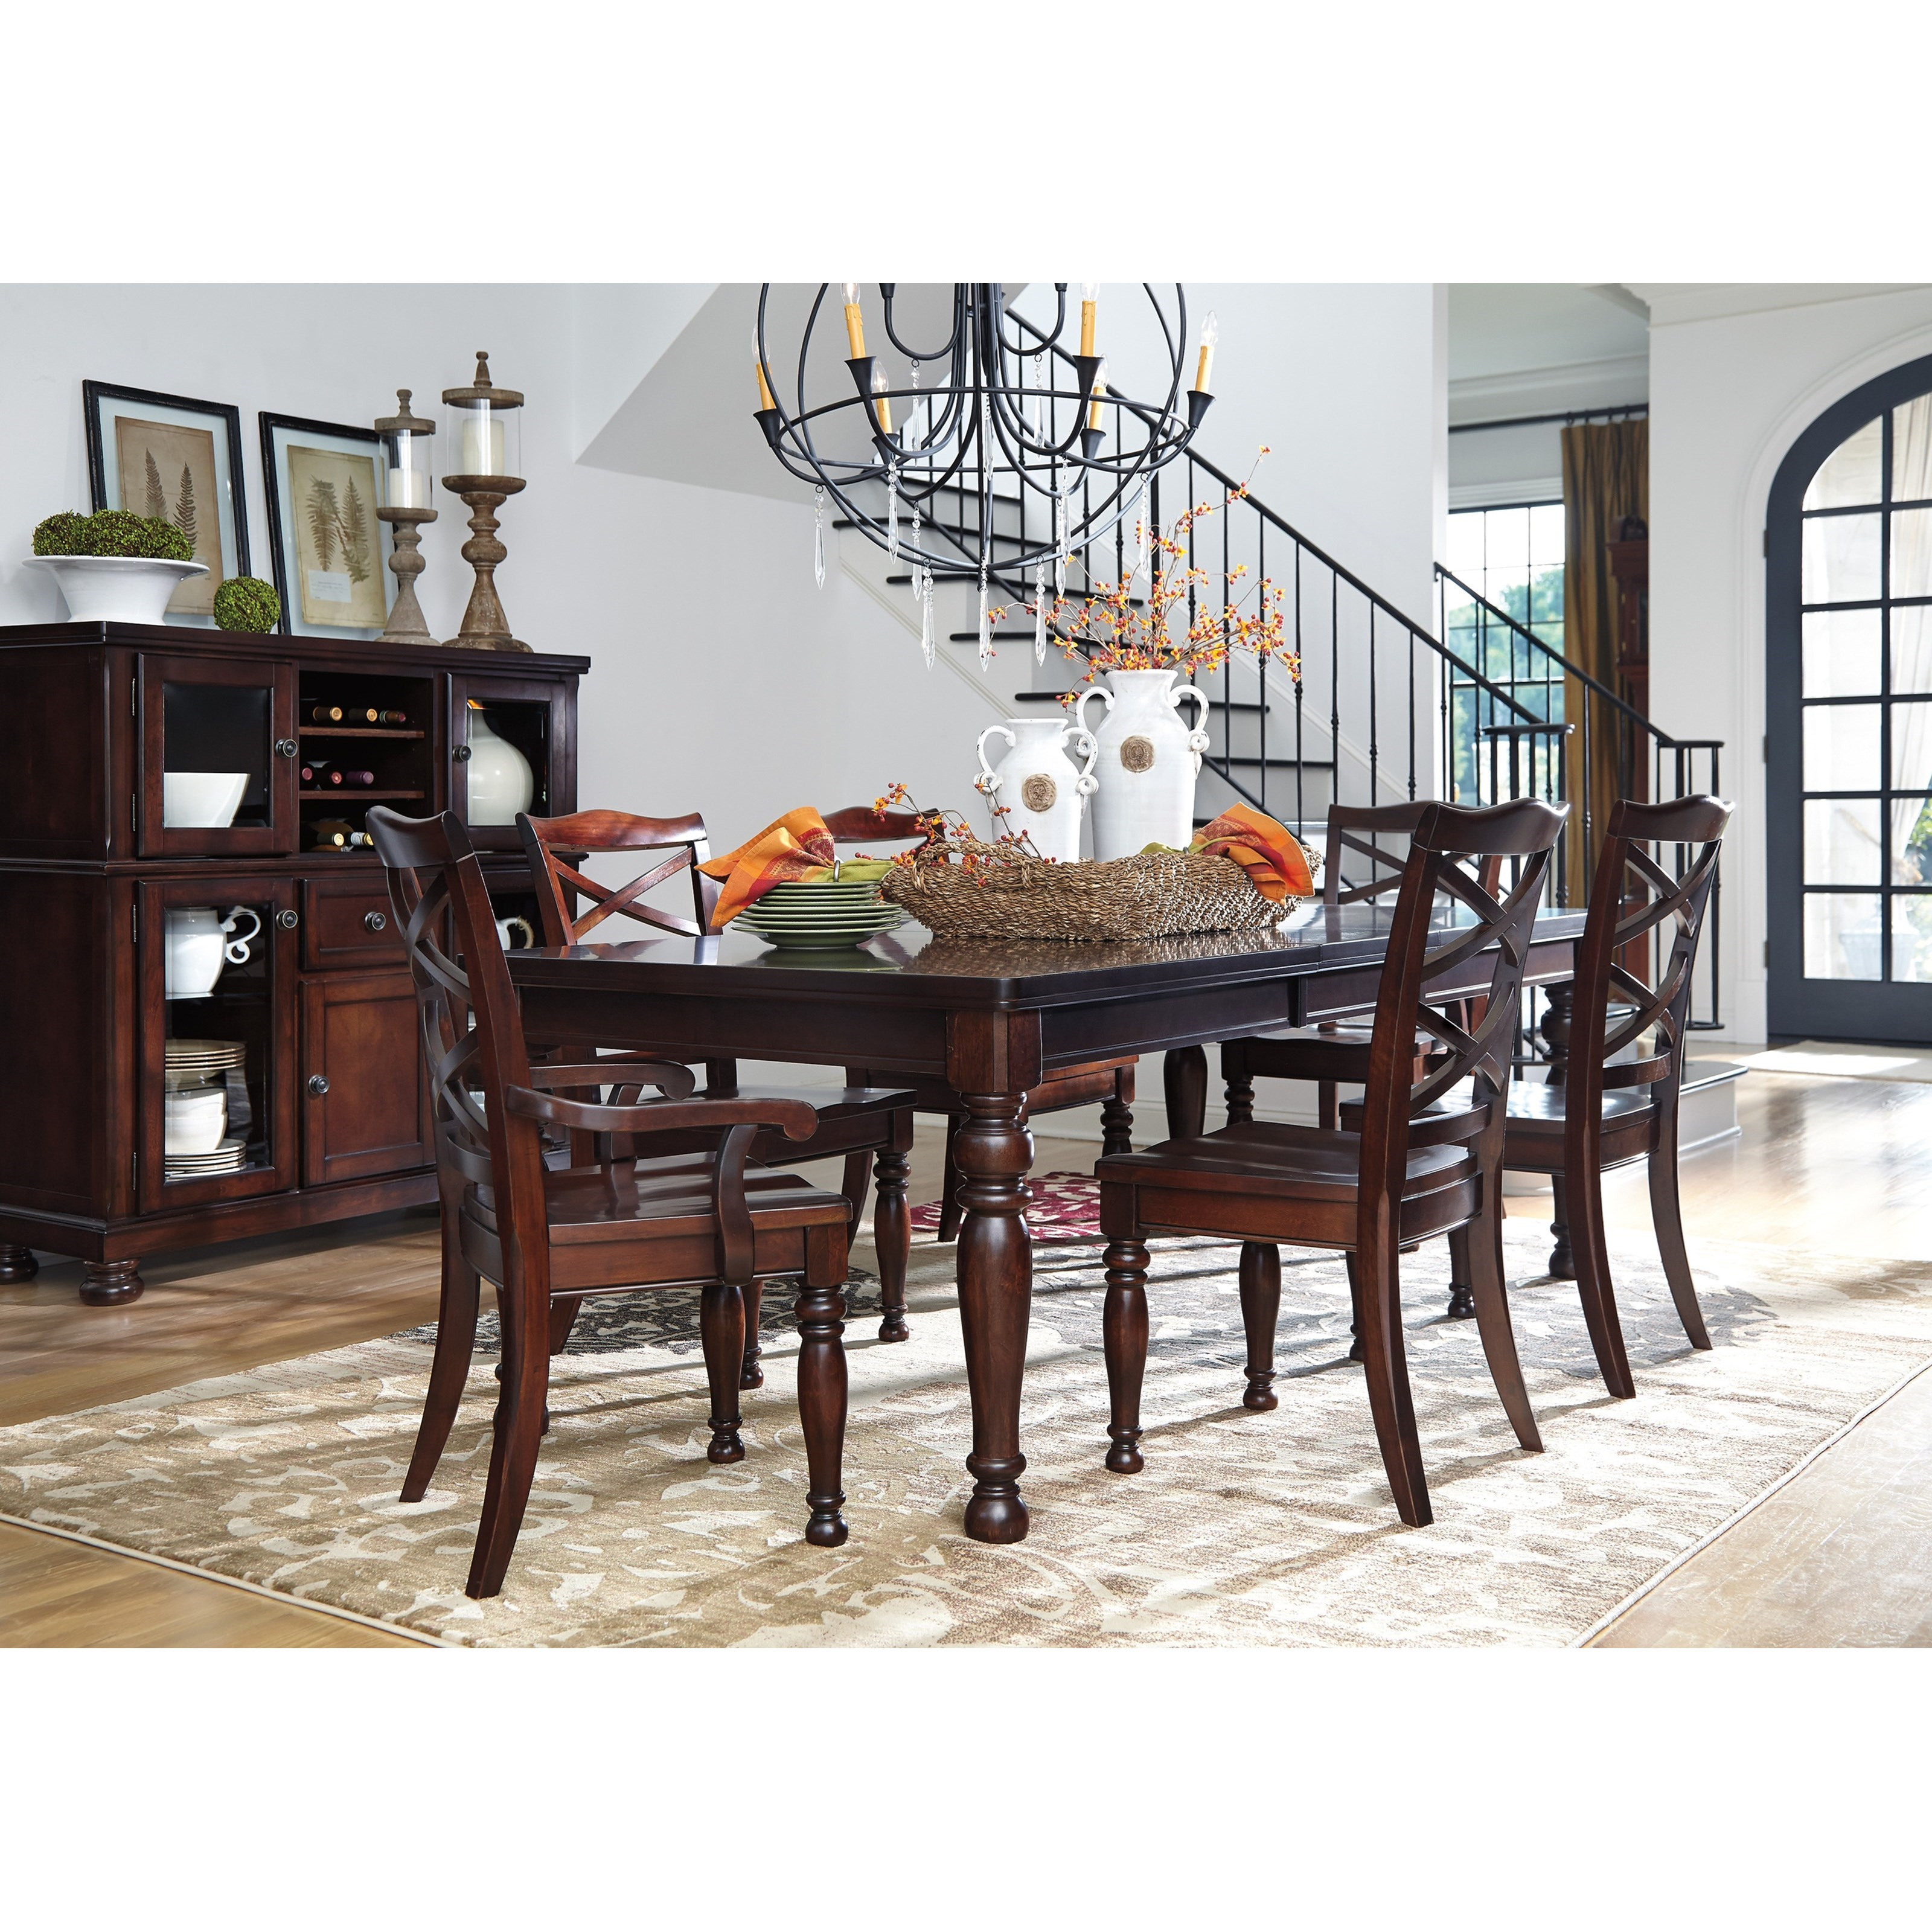 Ashley Furniture Dining Room Table: Ashley Furniture Porter Formal Dining Room Group